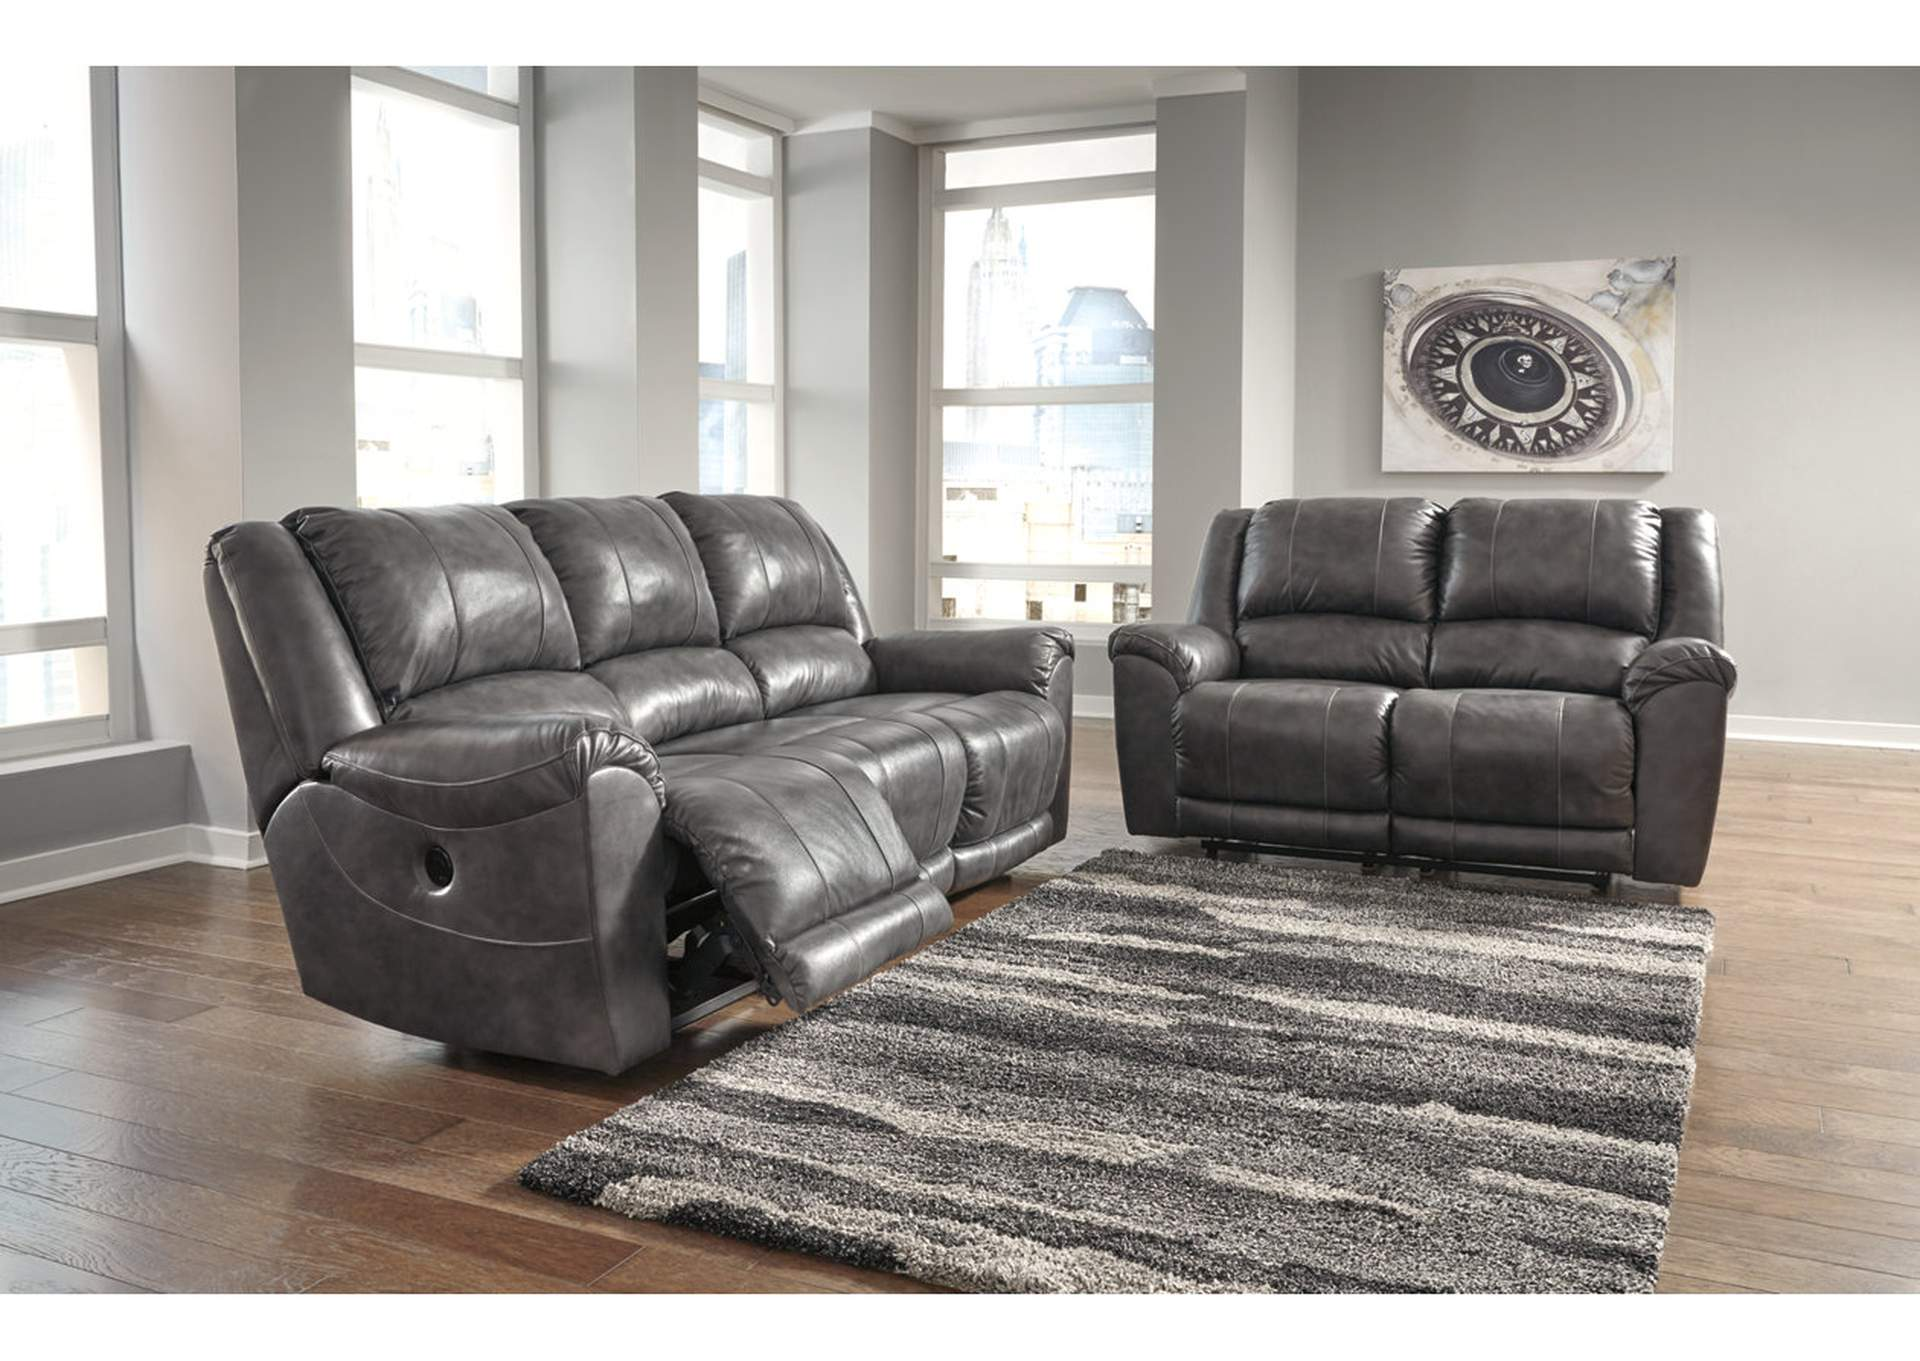 Persiphone Charcoal Power Reclining Sofa and Loveseat,Signature Design By Ashley